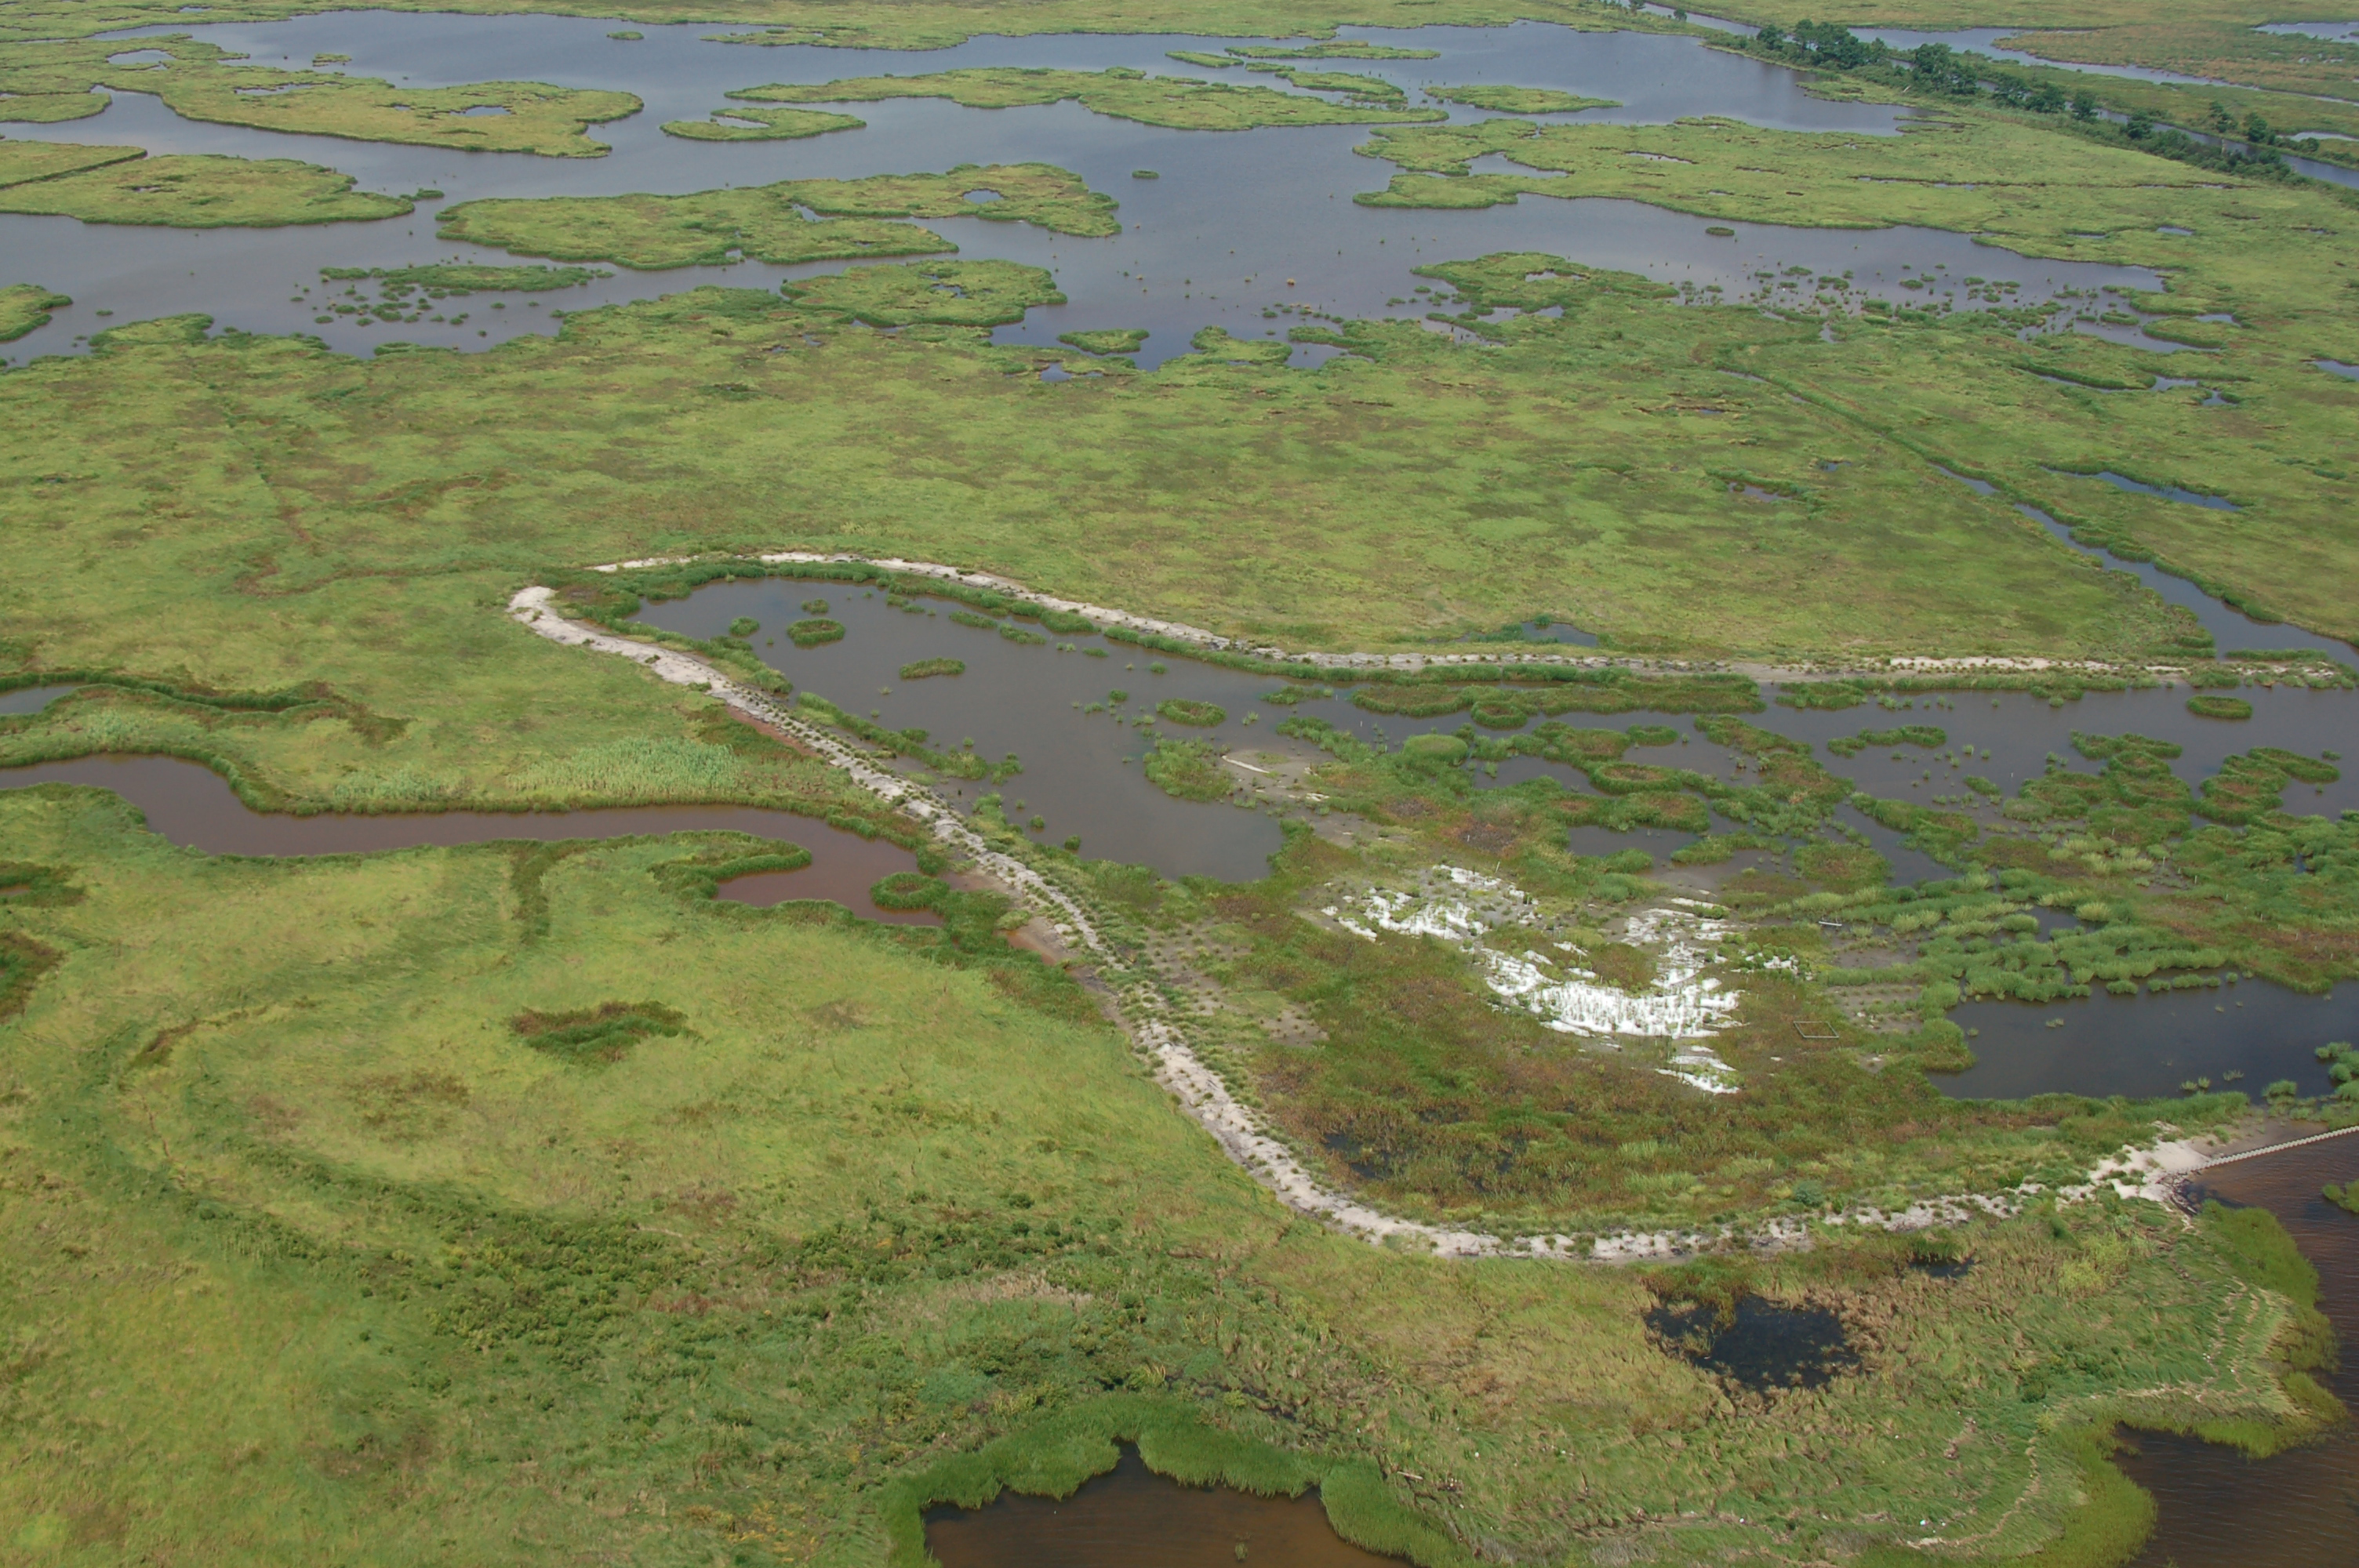 A Louisiana marsh restoration project at Goose Point/Point Platte. Image USFWS